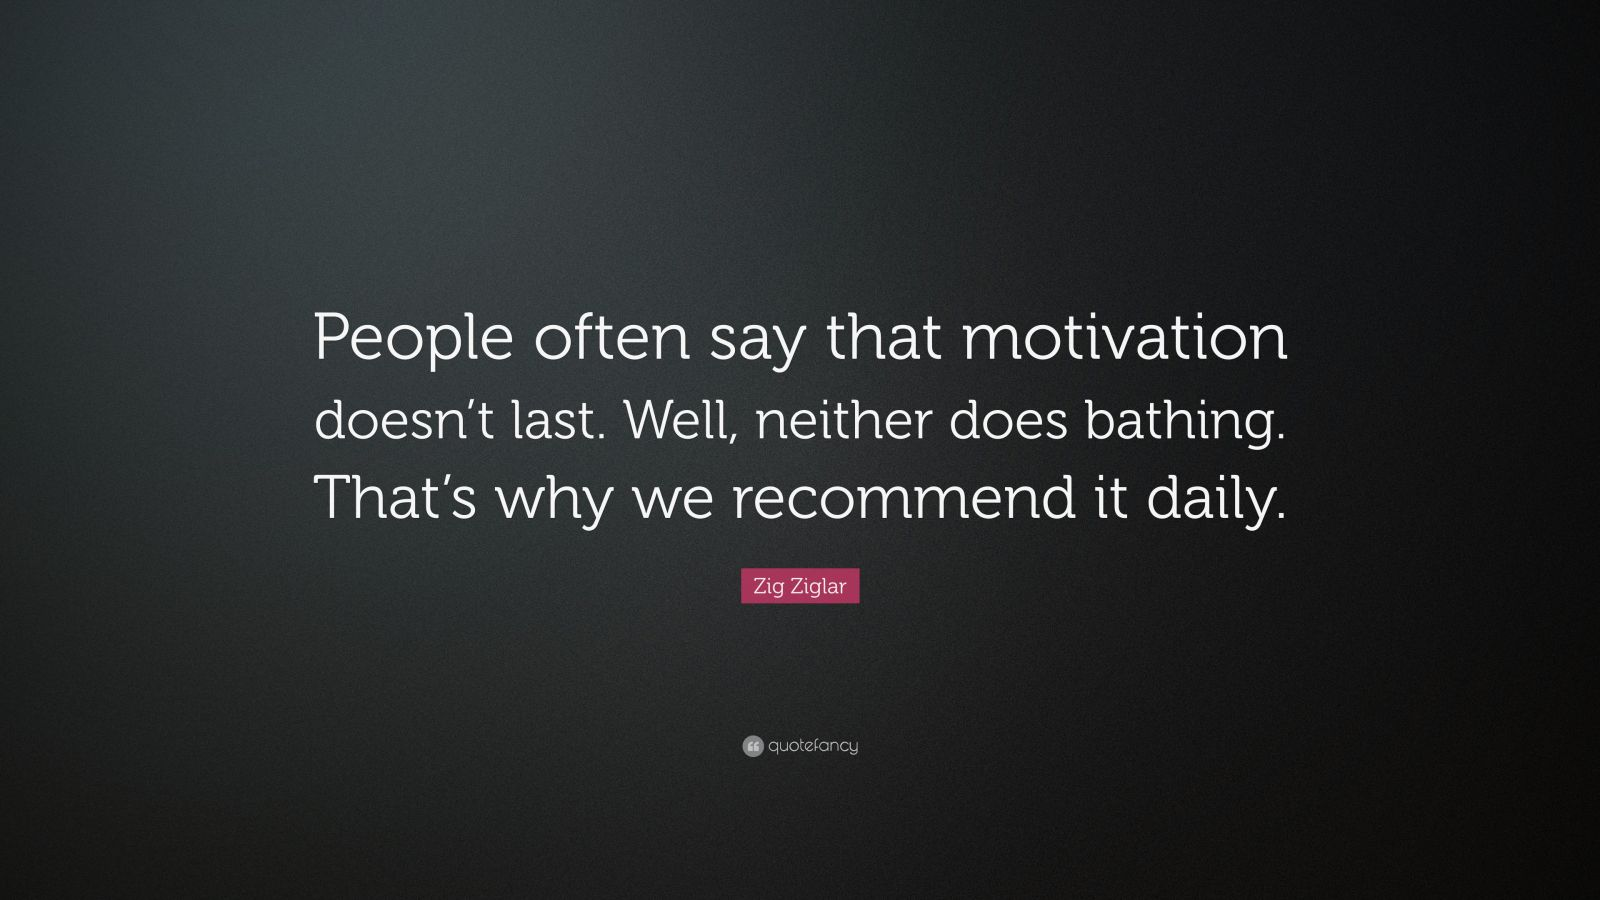 Zig Ziglar Motivation Doesn't Last Quote